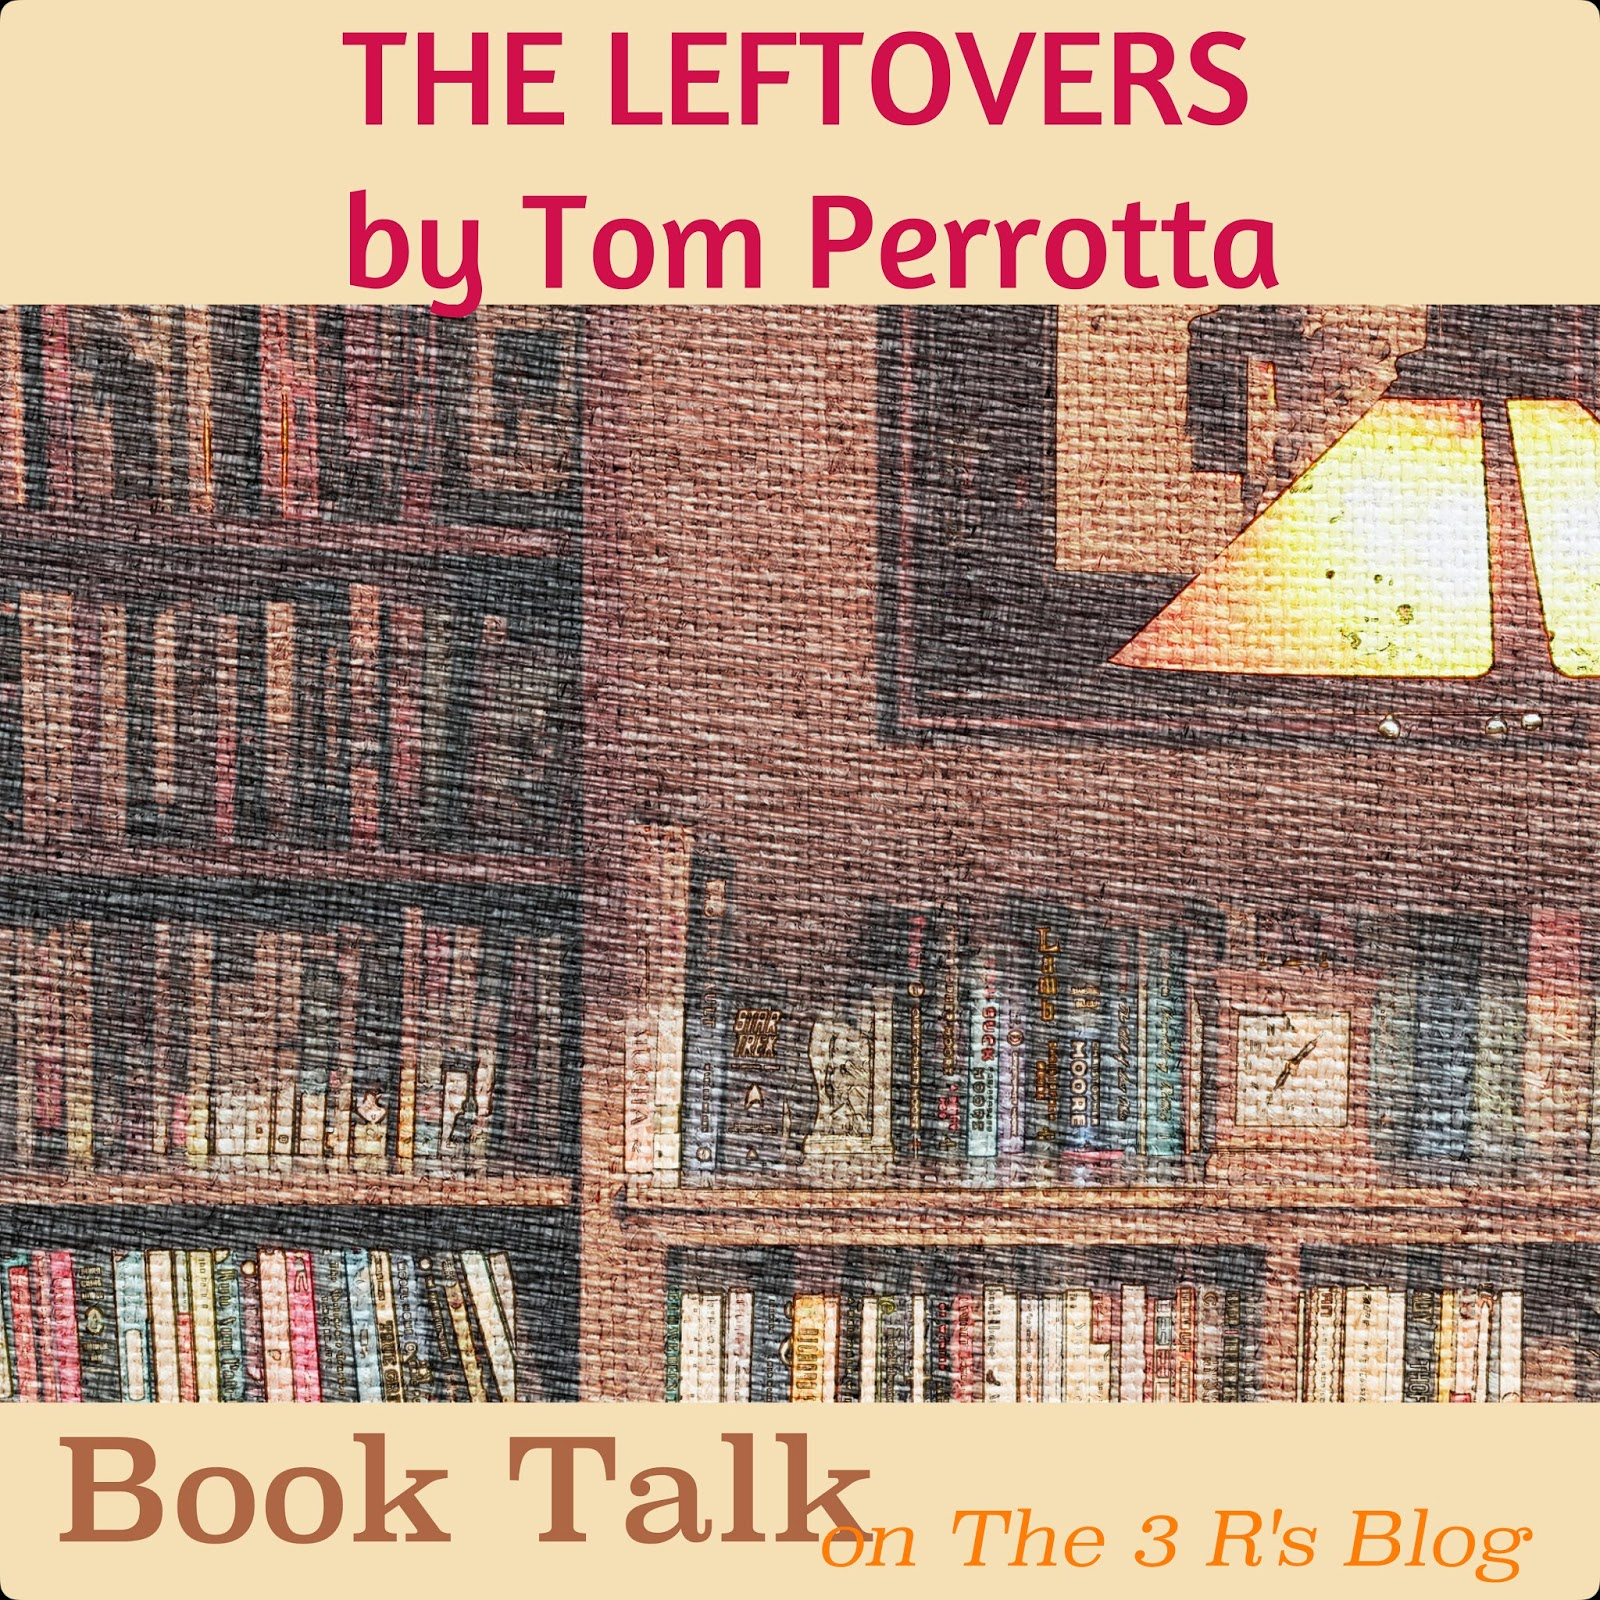 Book Talk about THE LEFTOVERS on The 3 Rs Blog